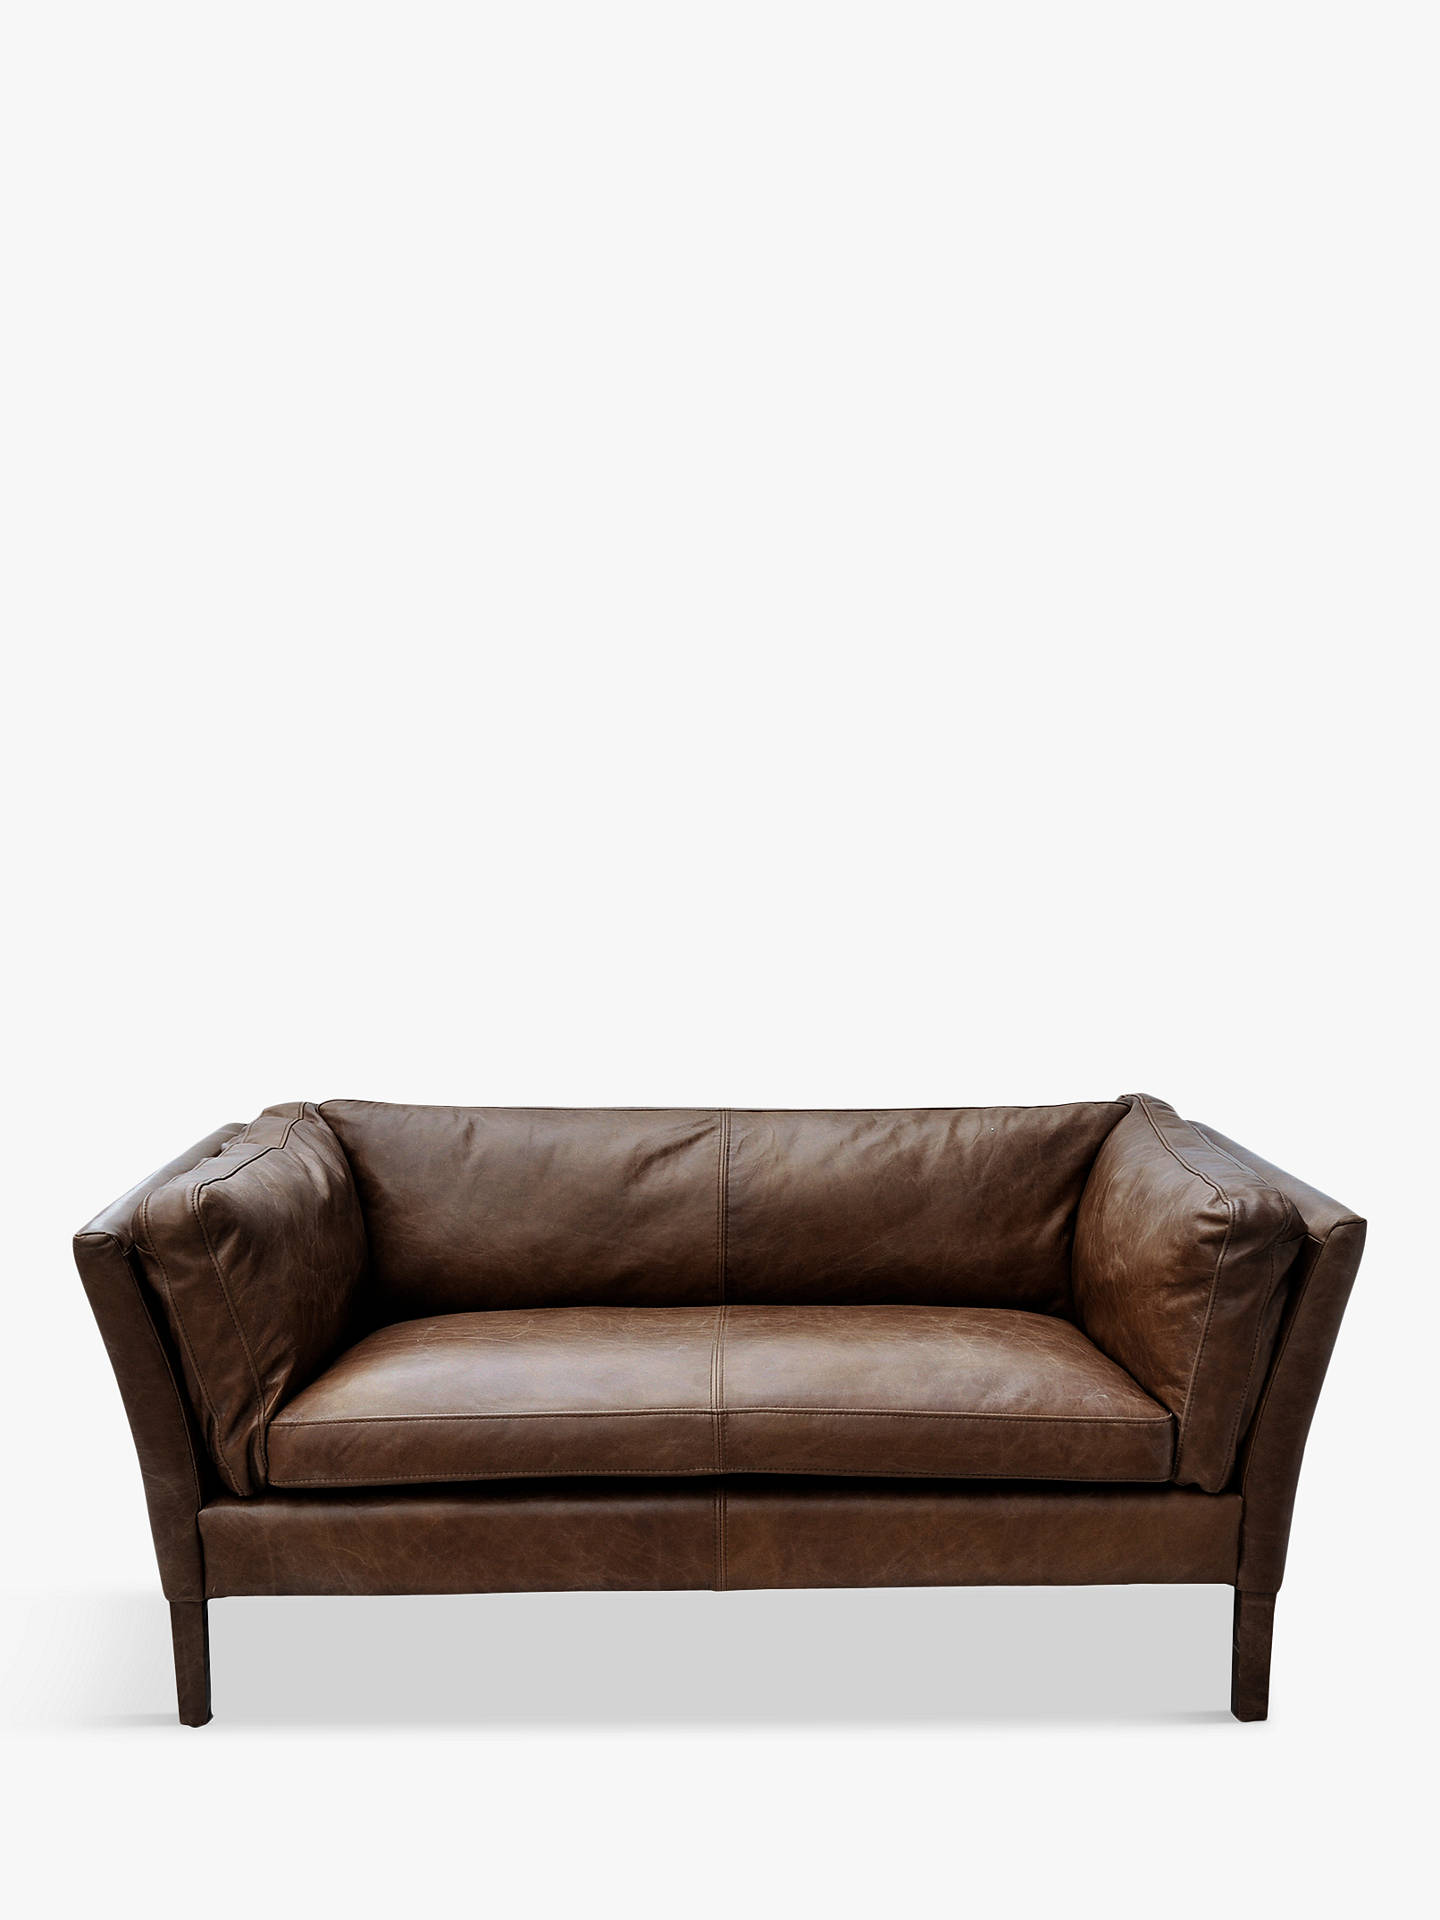 Buyhalo groucho small aniline leather sofa riders cocoa online at johnlewis com